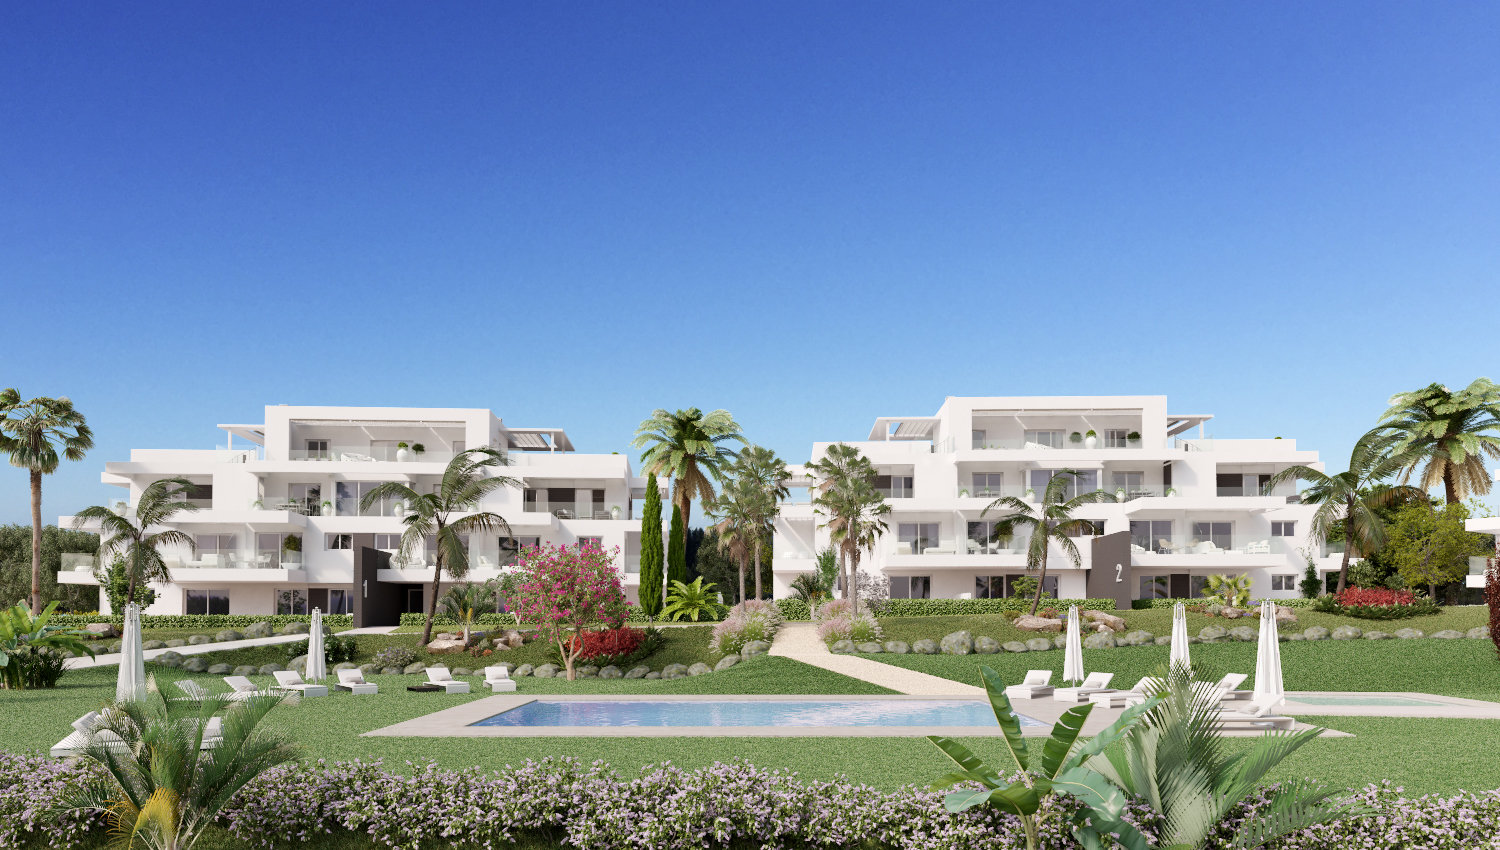 aaa3 bedroom Apartment in Benatalaya, Benahavis | M193078